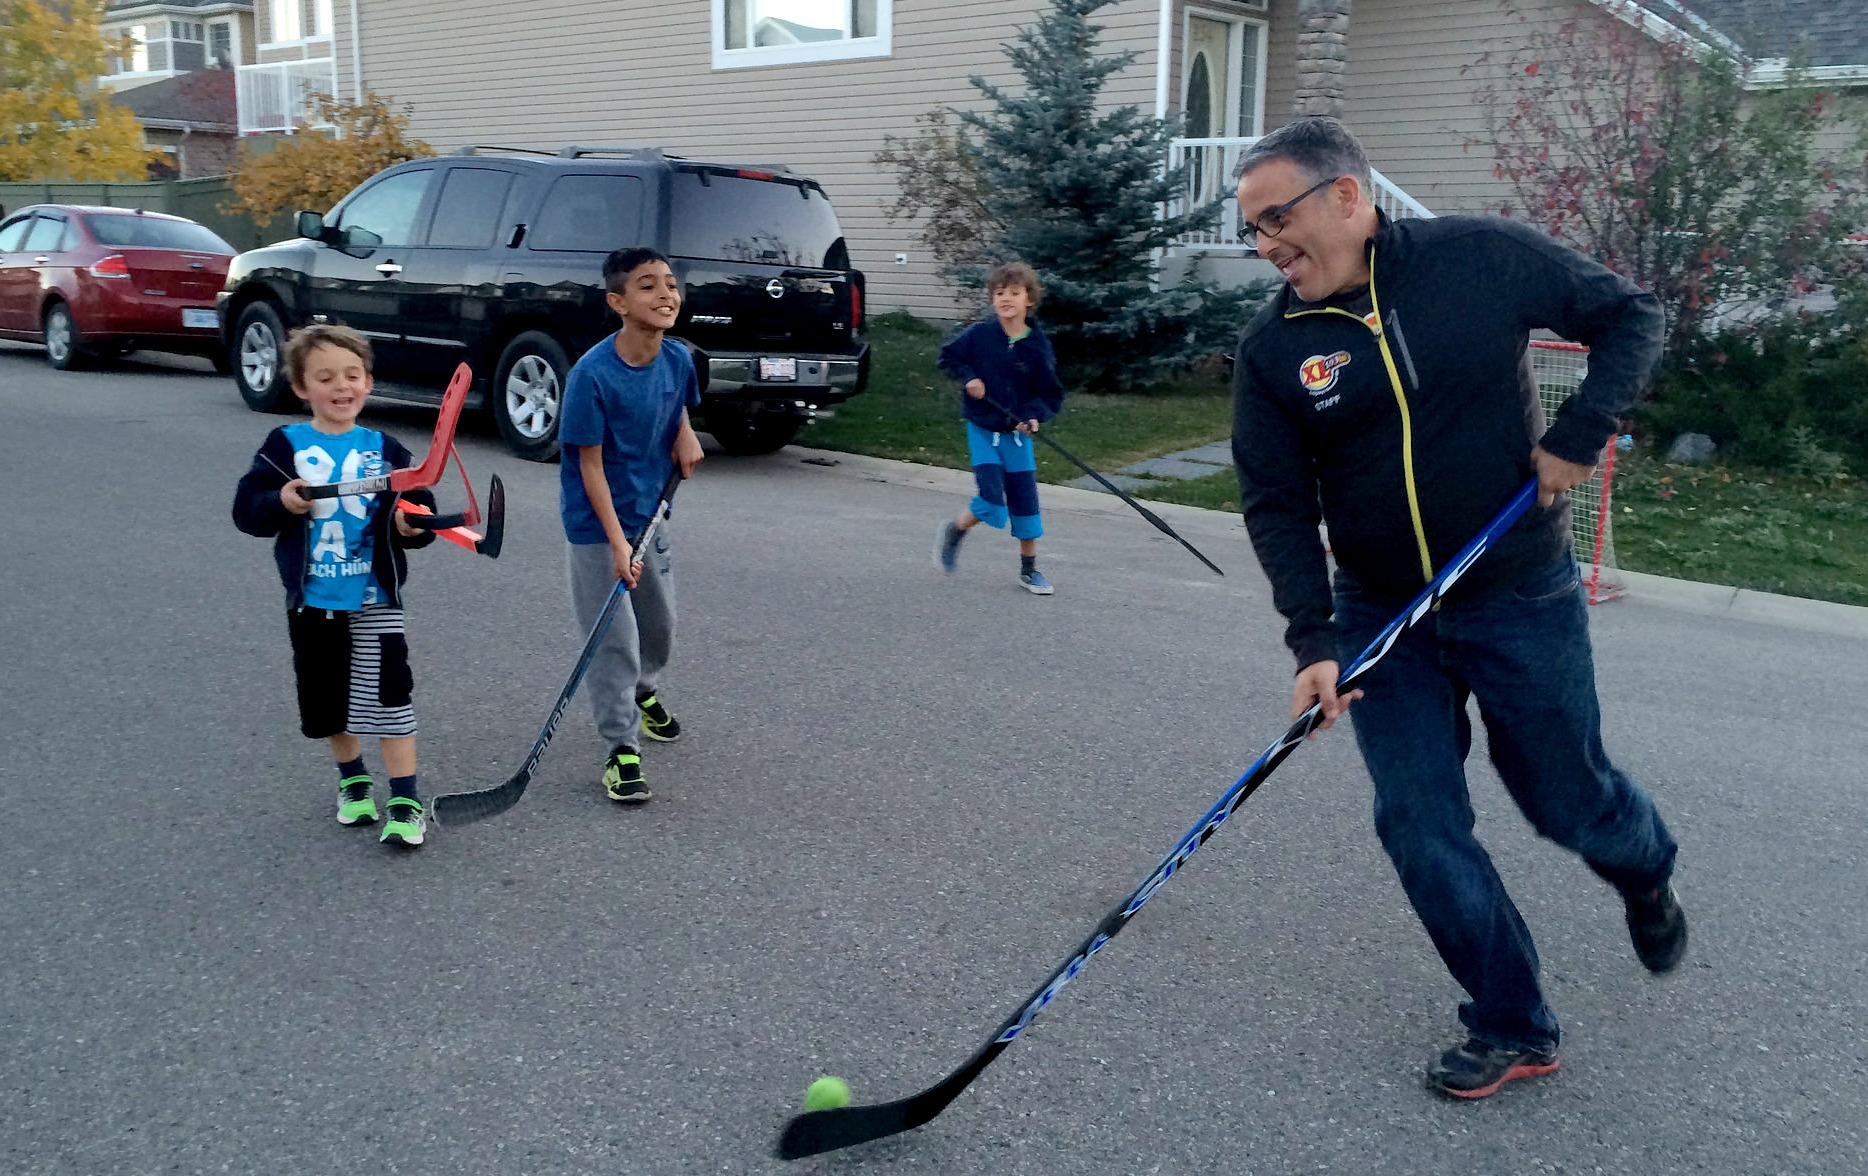 Road Hockey with the neighborhood kids